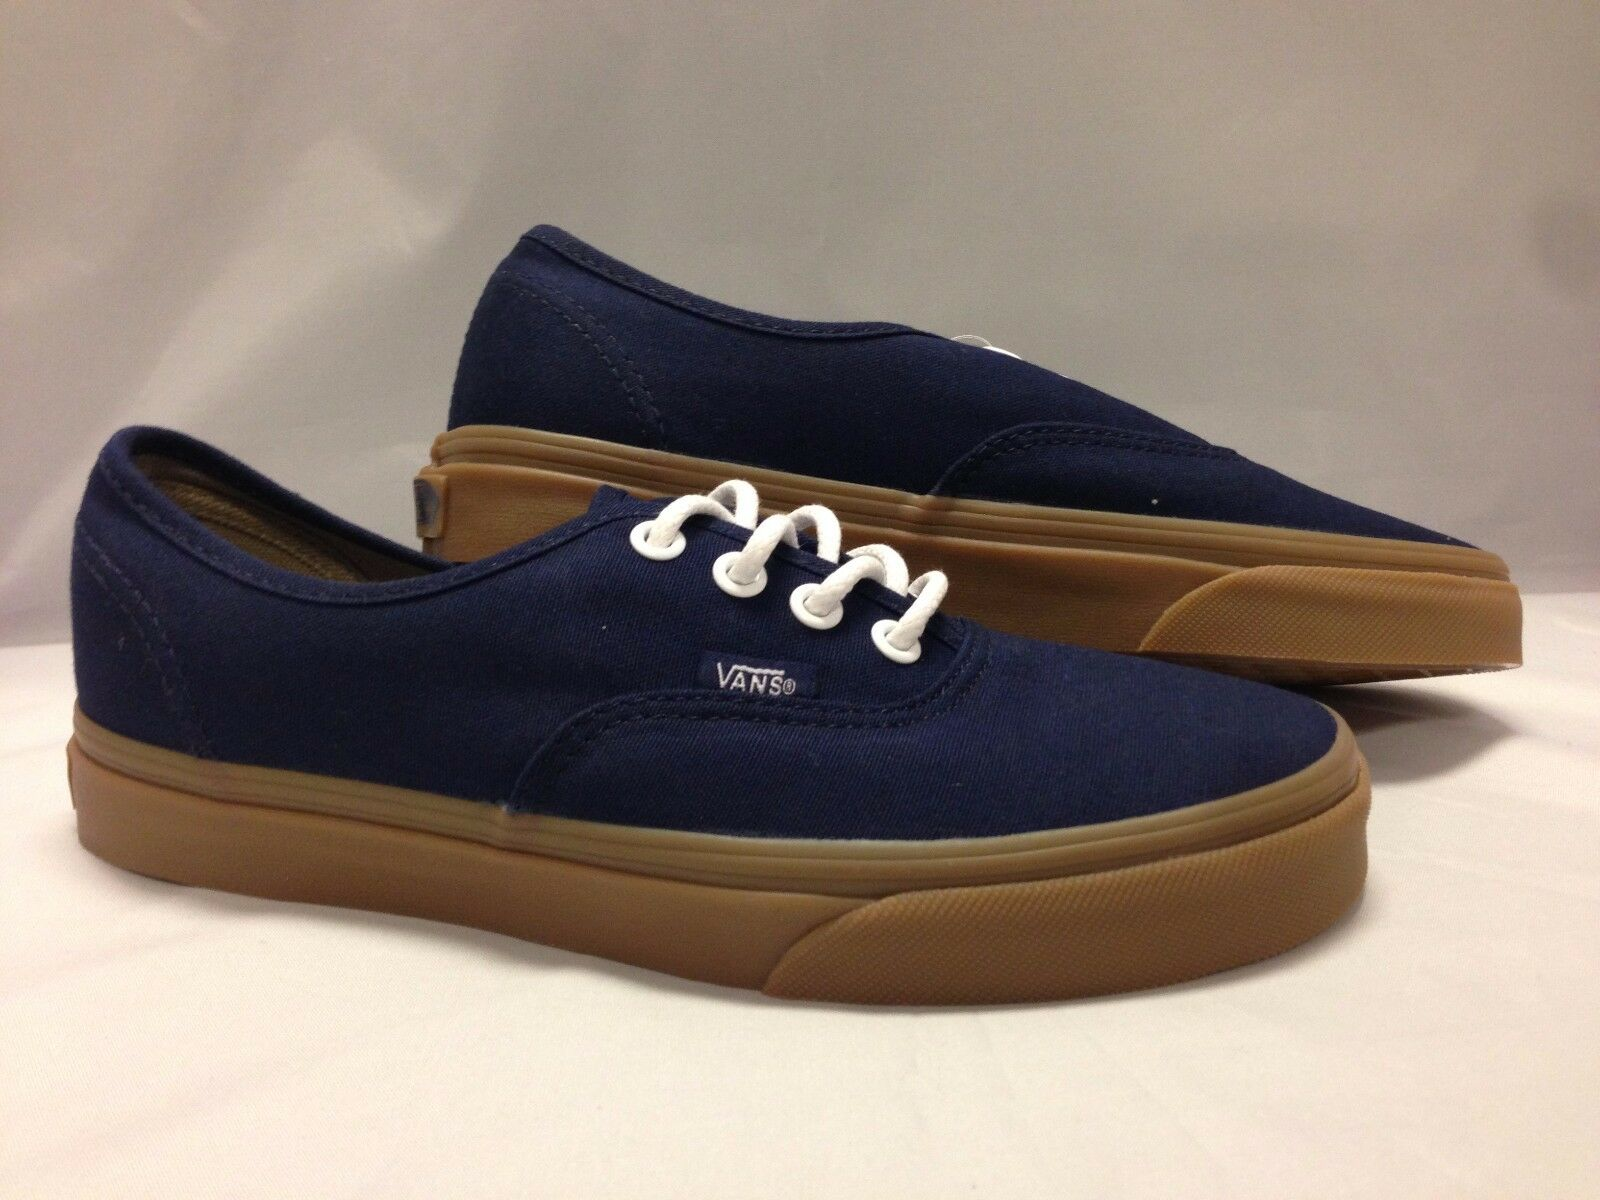 Vans Men's shoes Authentic (GumSole) -- Eclipse Lgt Gum